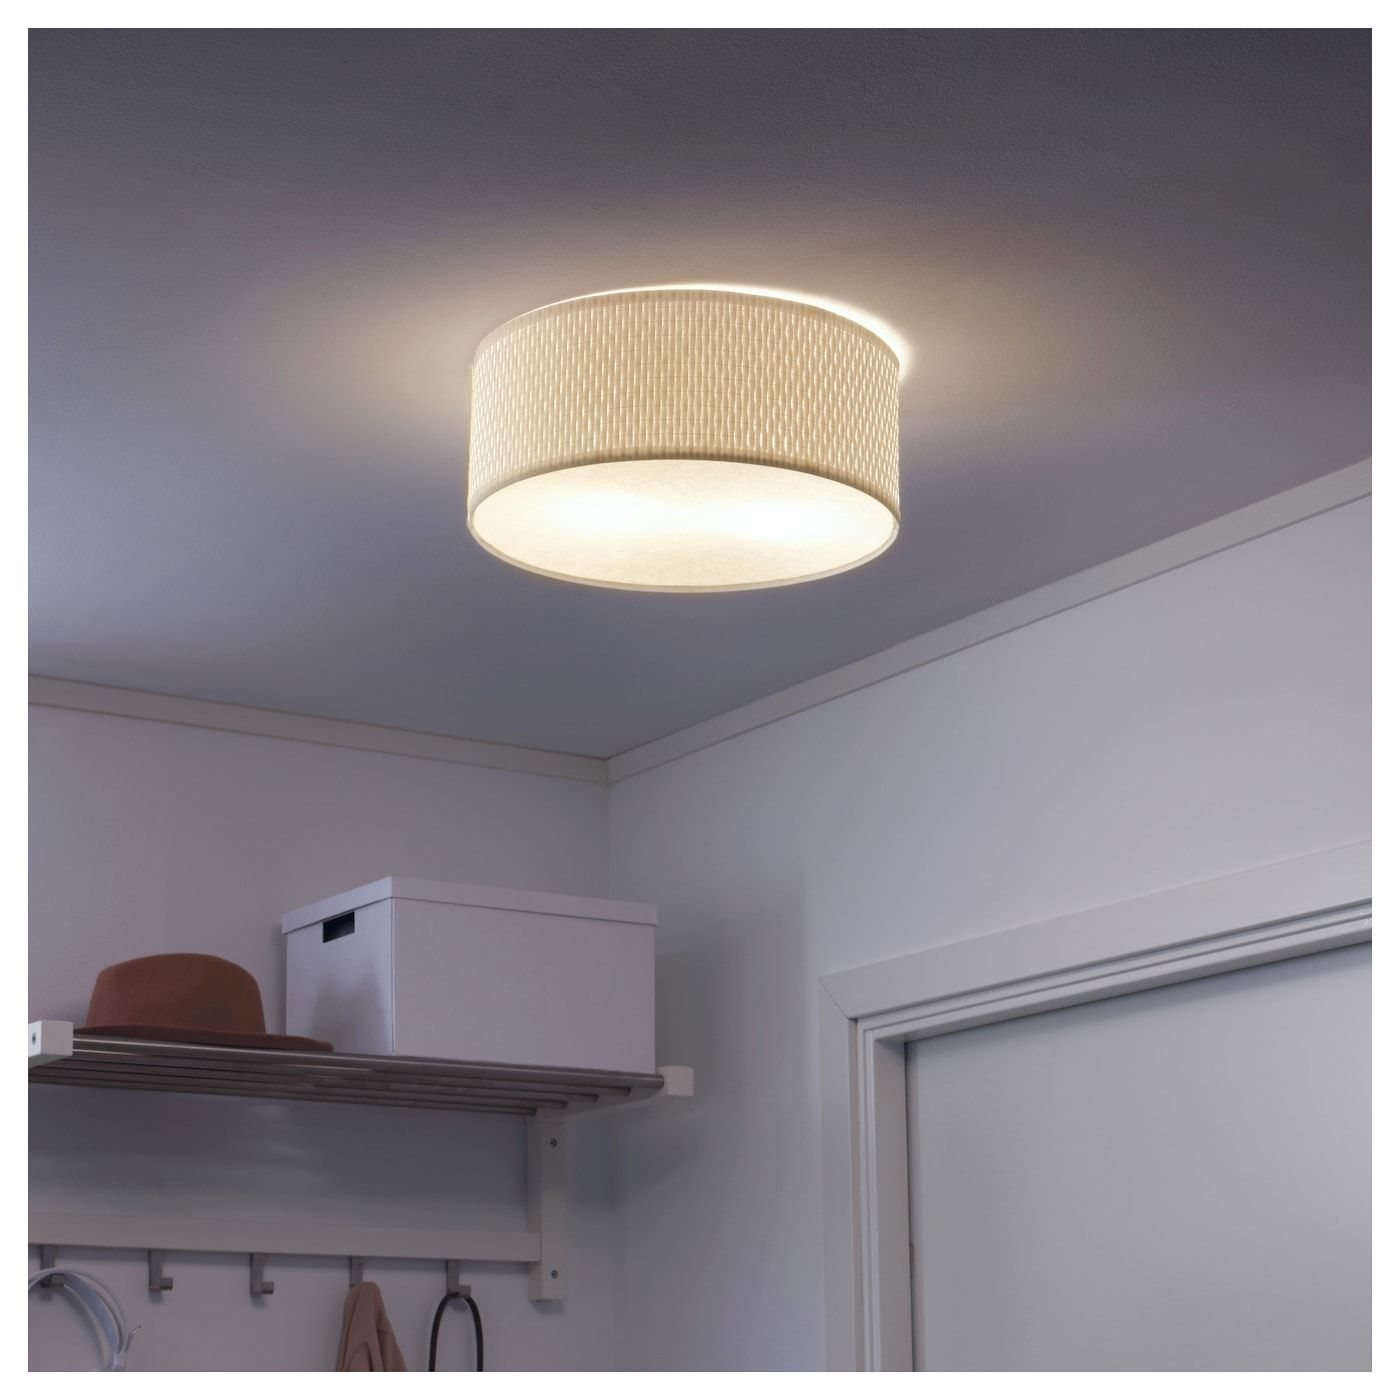 Ikea Us Furniture And Home Furnishings Ceiling Lamp White Ceiling Lamp Bedroom Ceiling Light